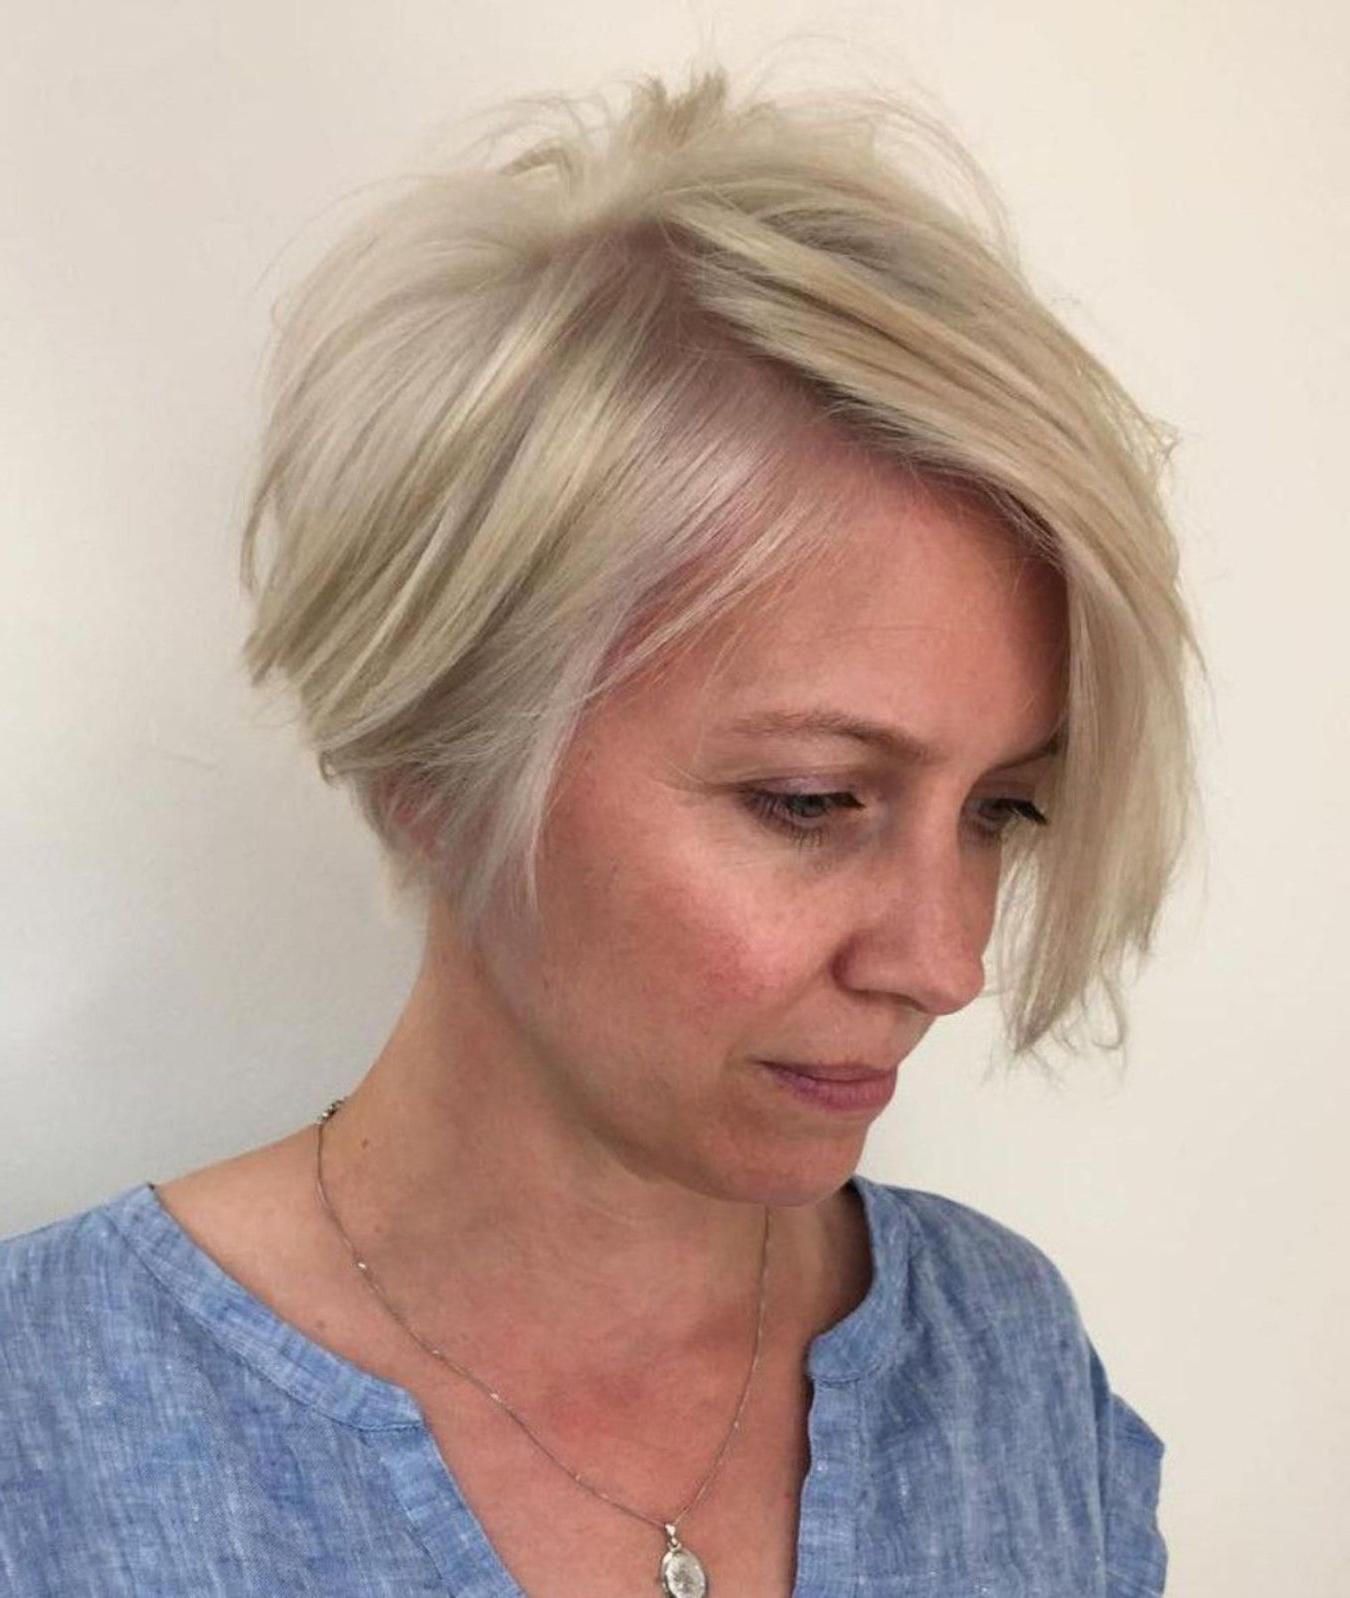 Most Current Razored Blonde Bob Haircuts With Bangs For Hairstyles : Razored Blonde Bob Delightful 60 Beautiful And (View 14 of 20)